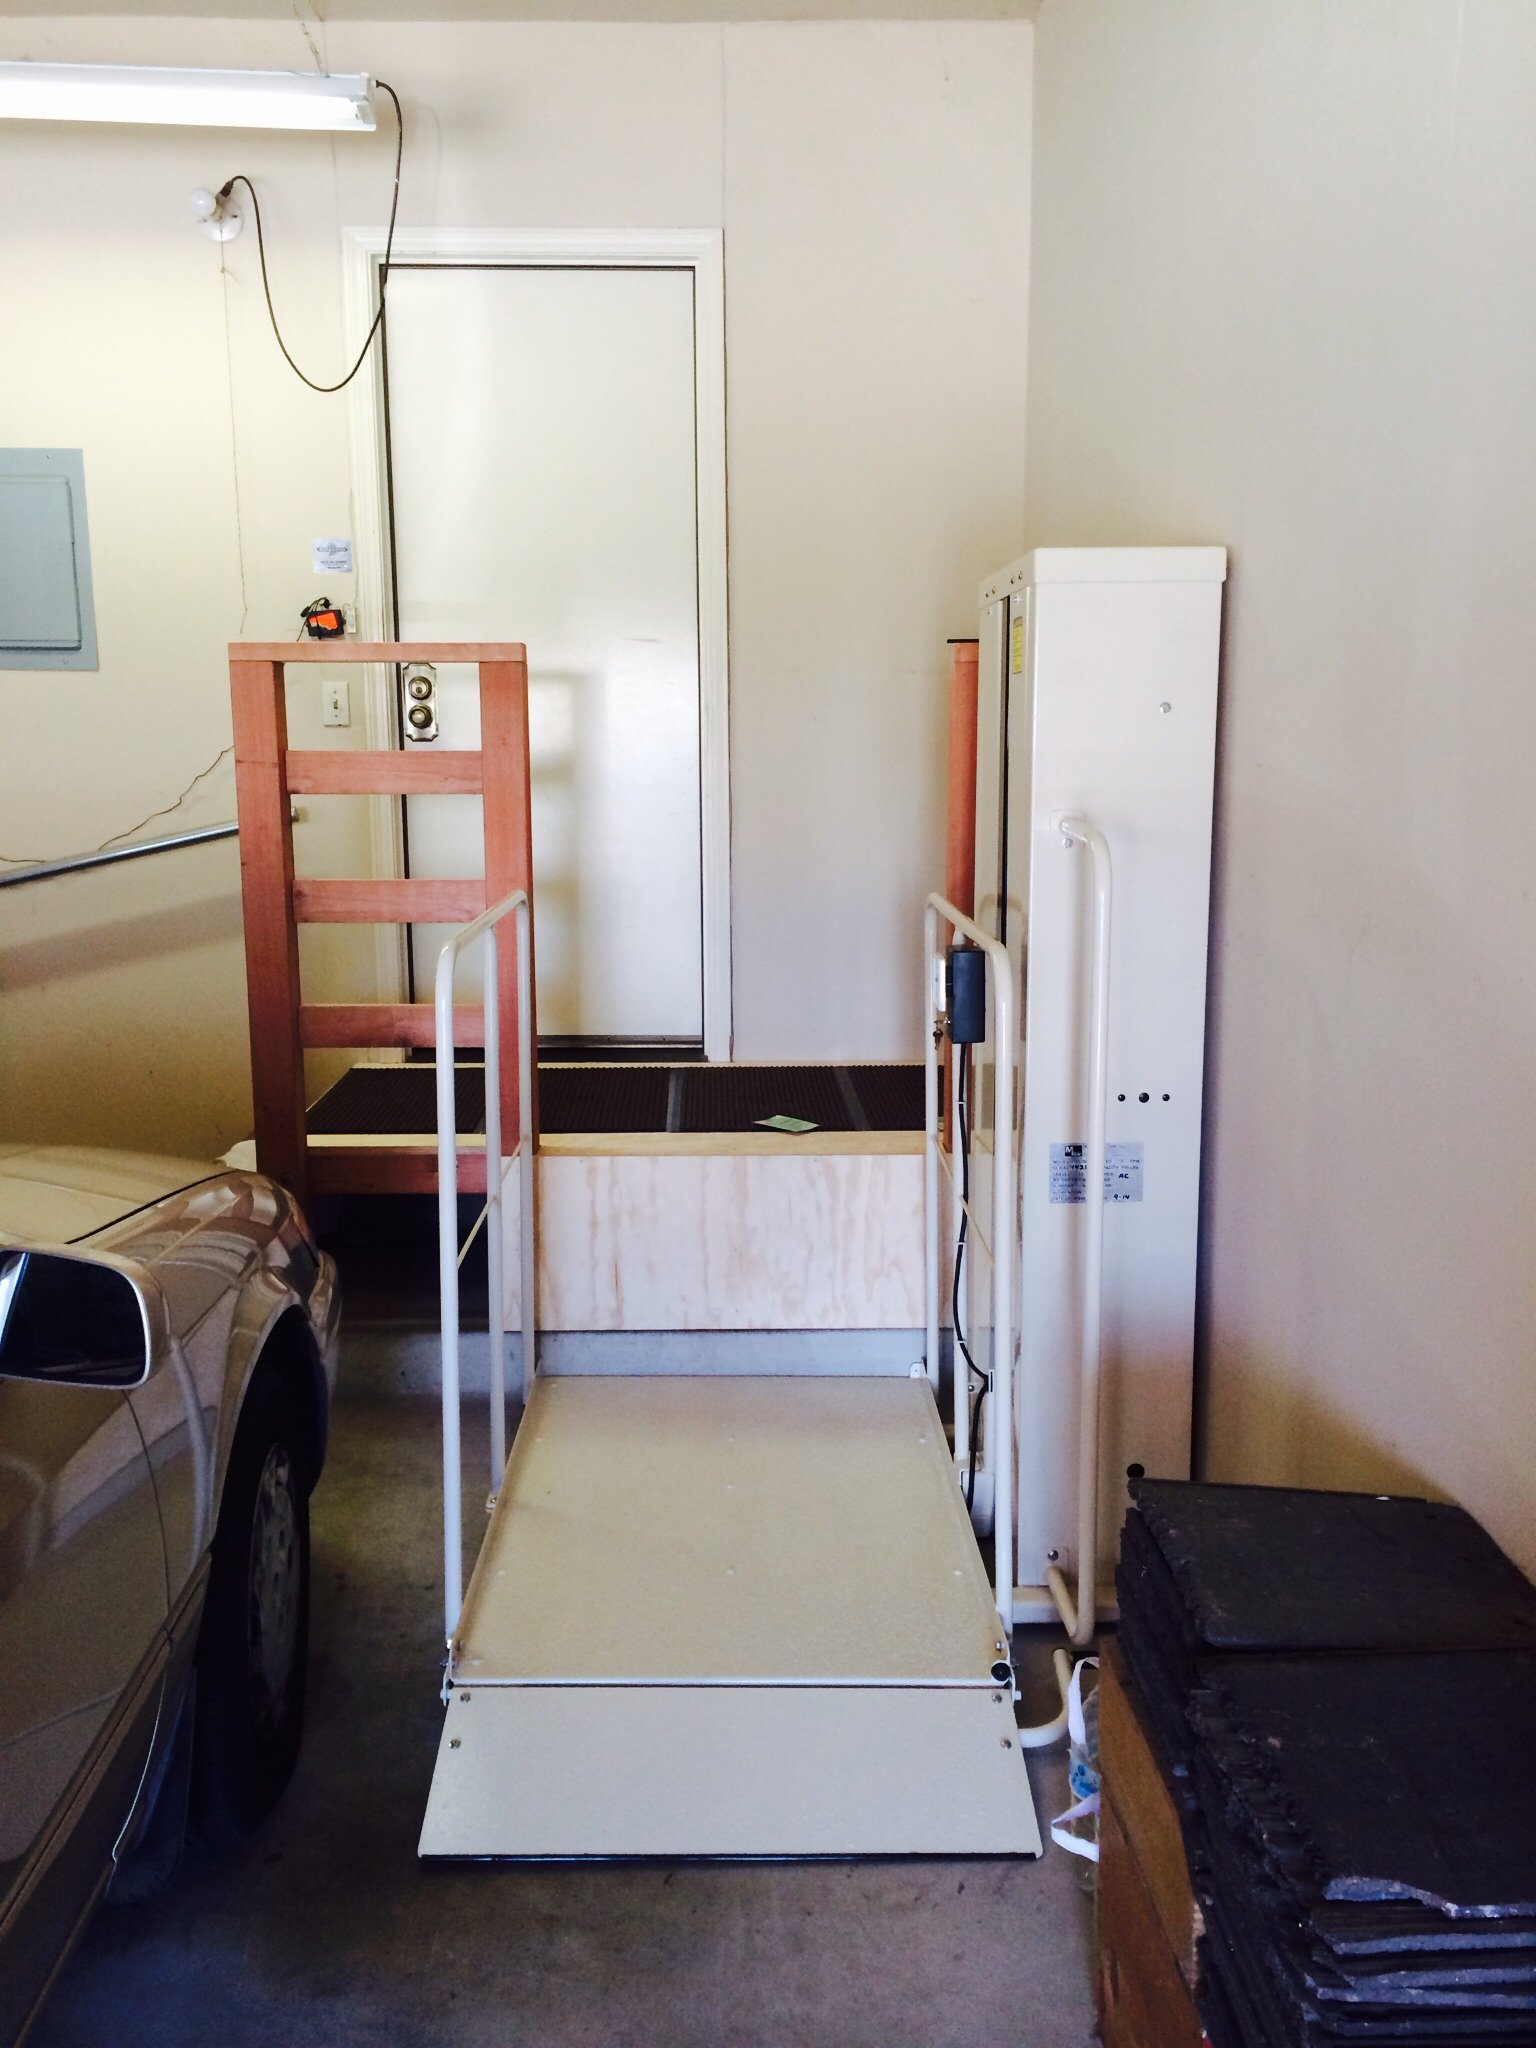 most expensive chair lift plastic stacking chairs vertical wheelchair lifts san francisco oakland